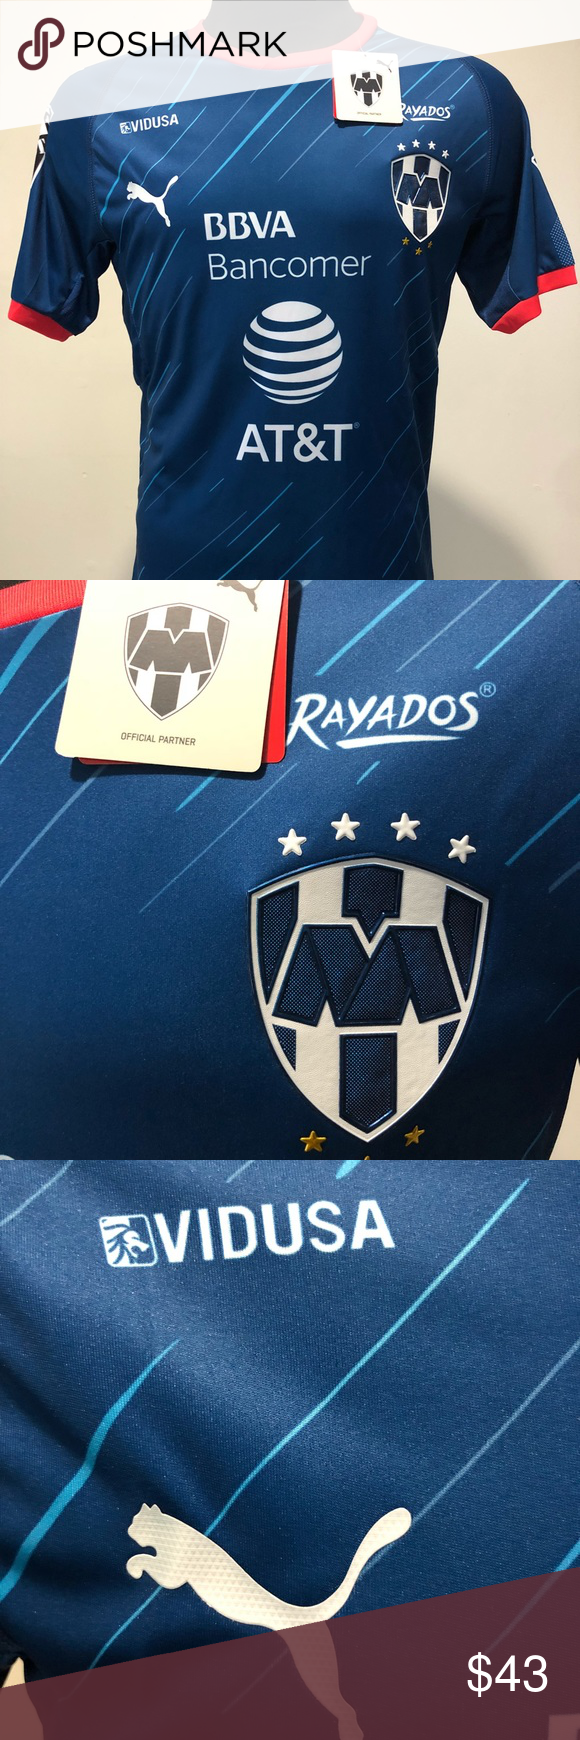 e62ea3193 Monterrey Away Jersey 2018-2019 Los Rayados enjoyed a successful past  season